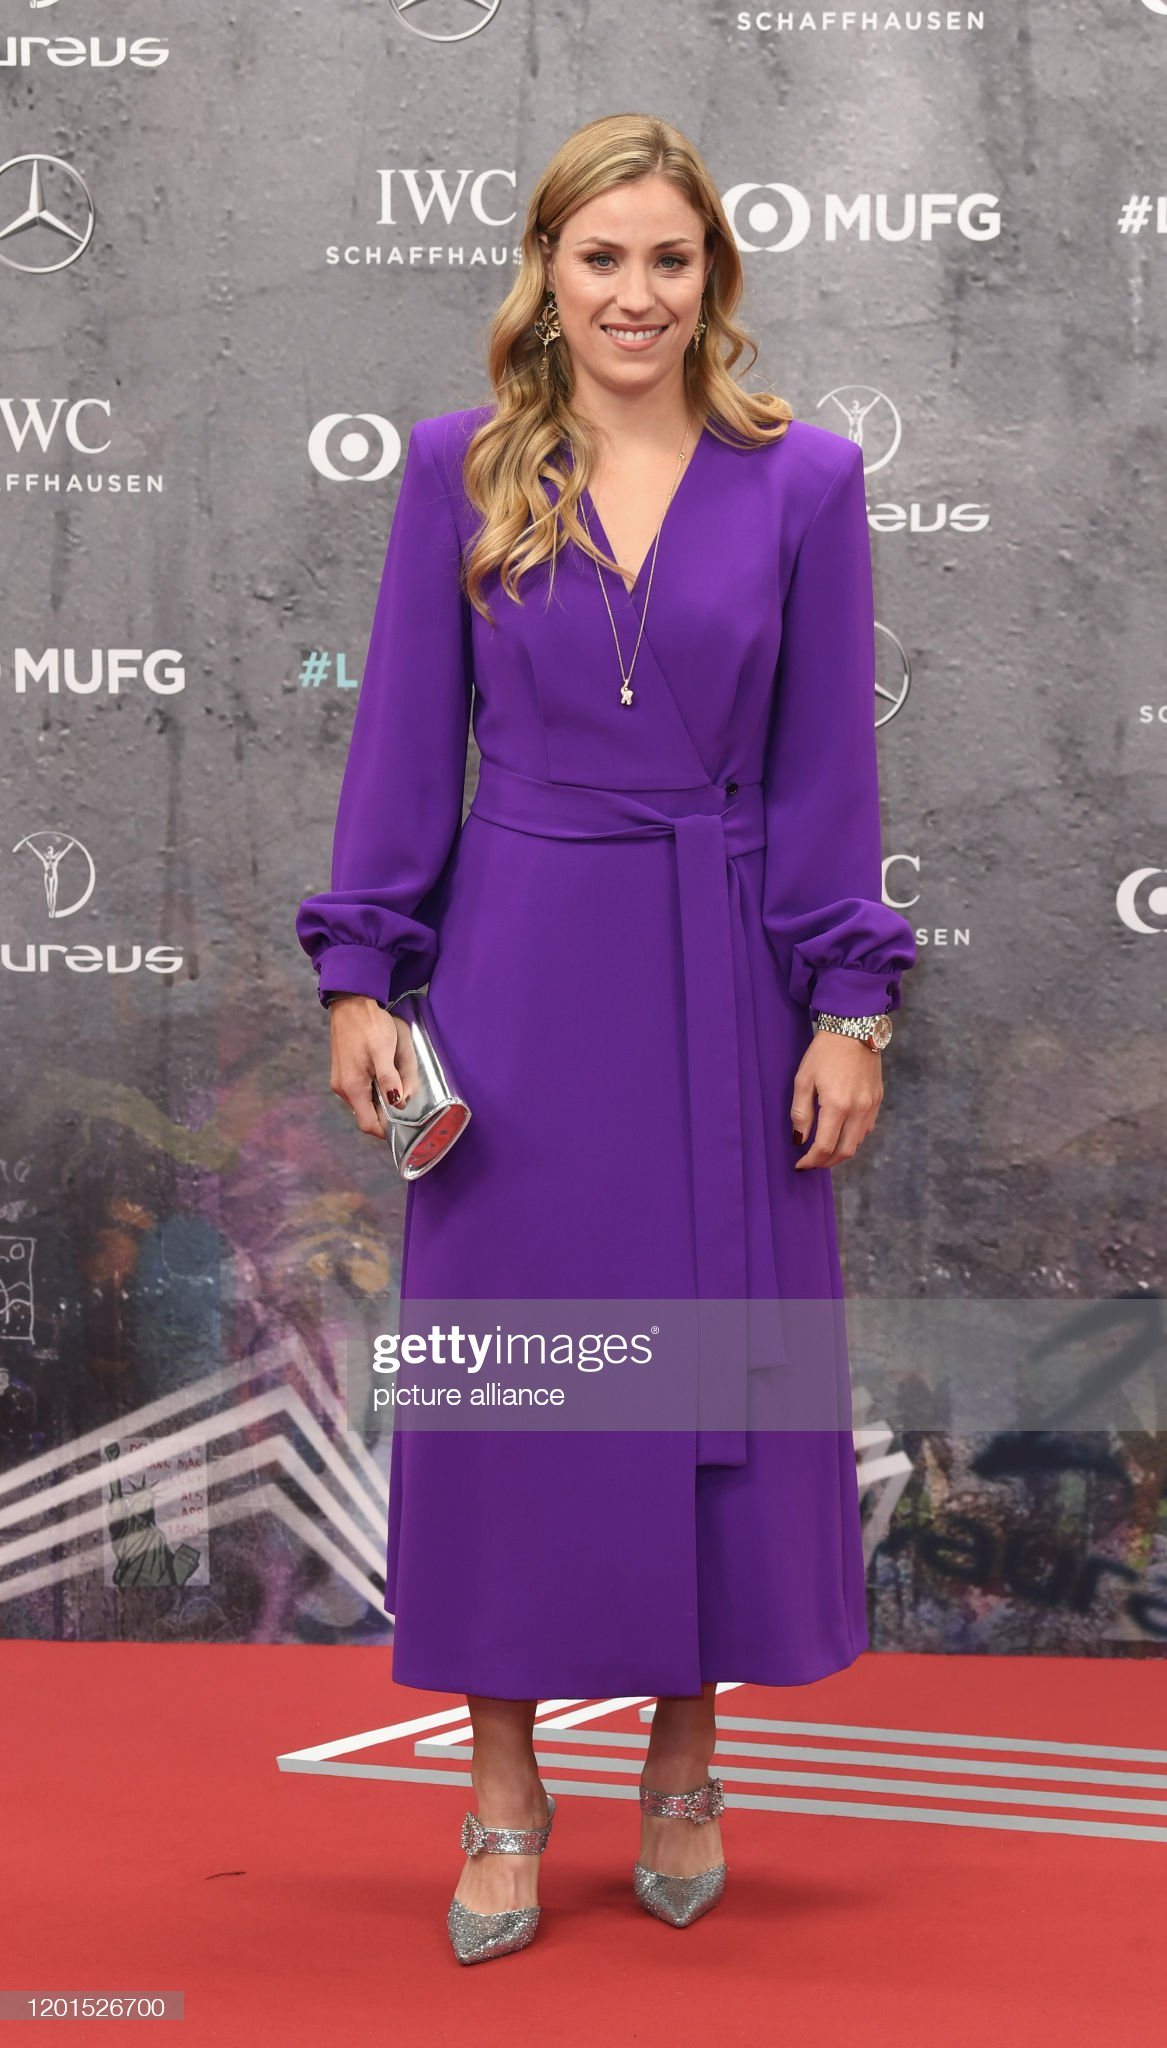 Laureus Sports Awards 2020 : News Photo